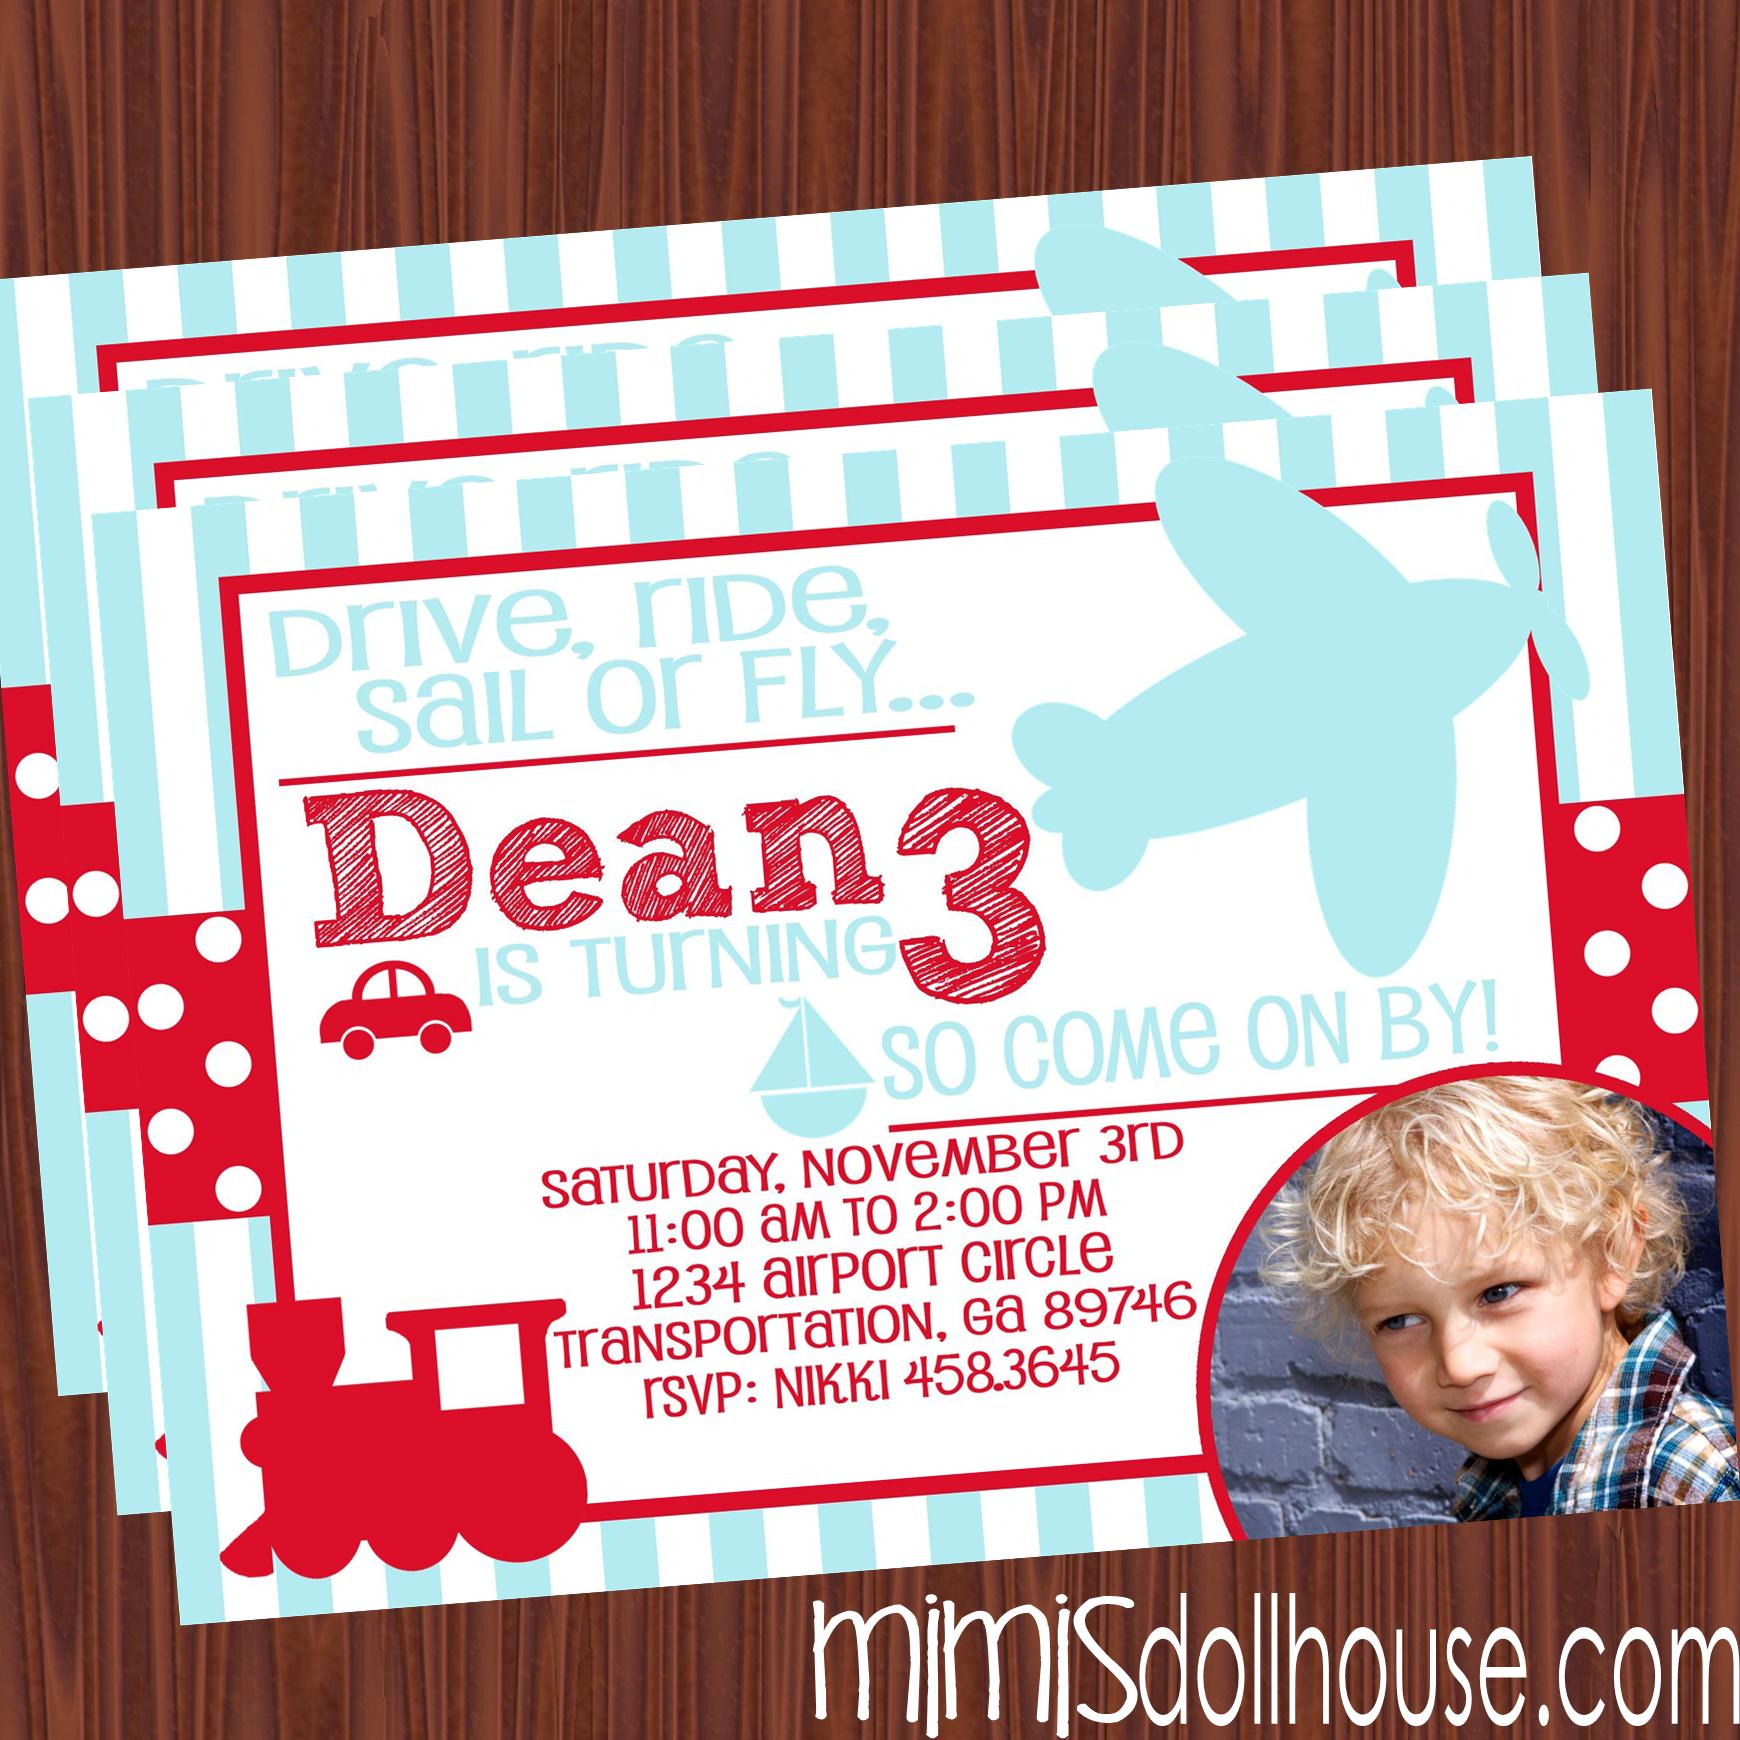 3rd birthday party invitation quotes ; 3Rd-Birthday-Invitations-and-get-ideas-how-to-make-charming-birthday-Invitation-appearance-11